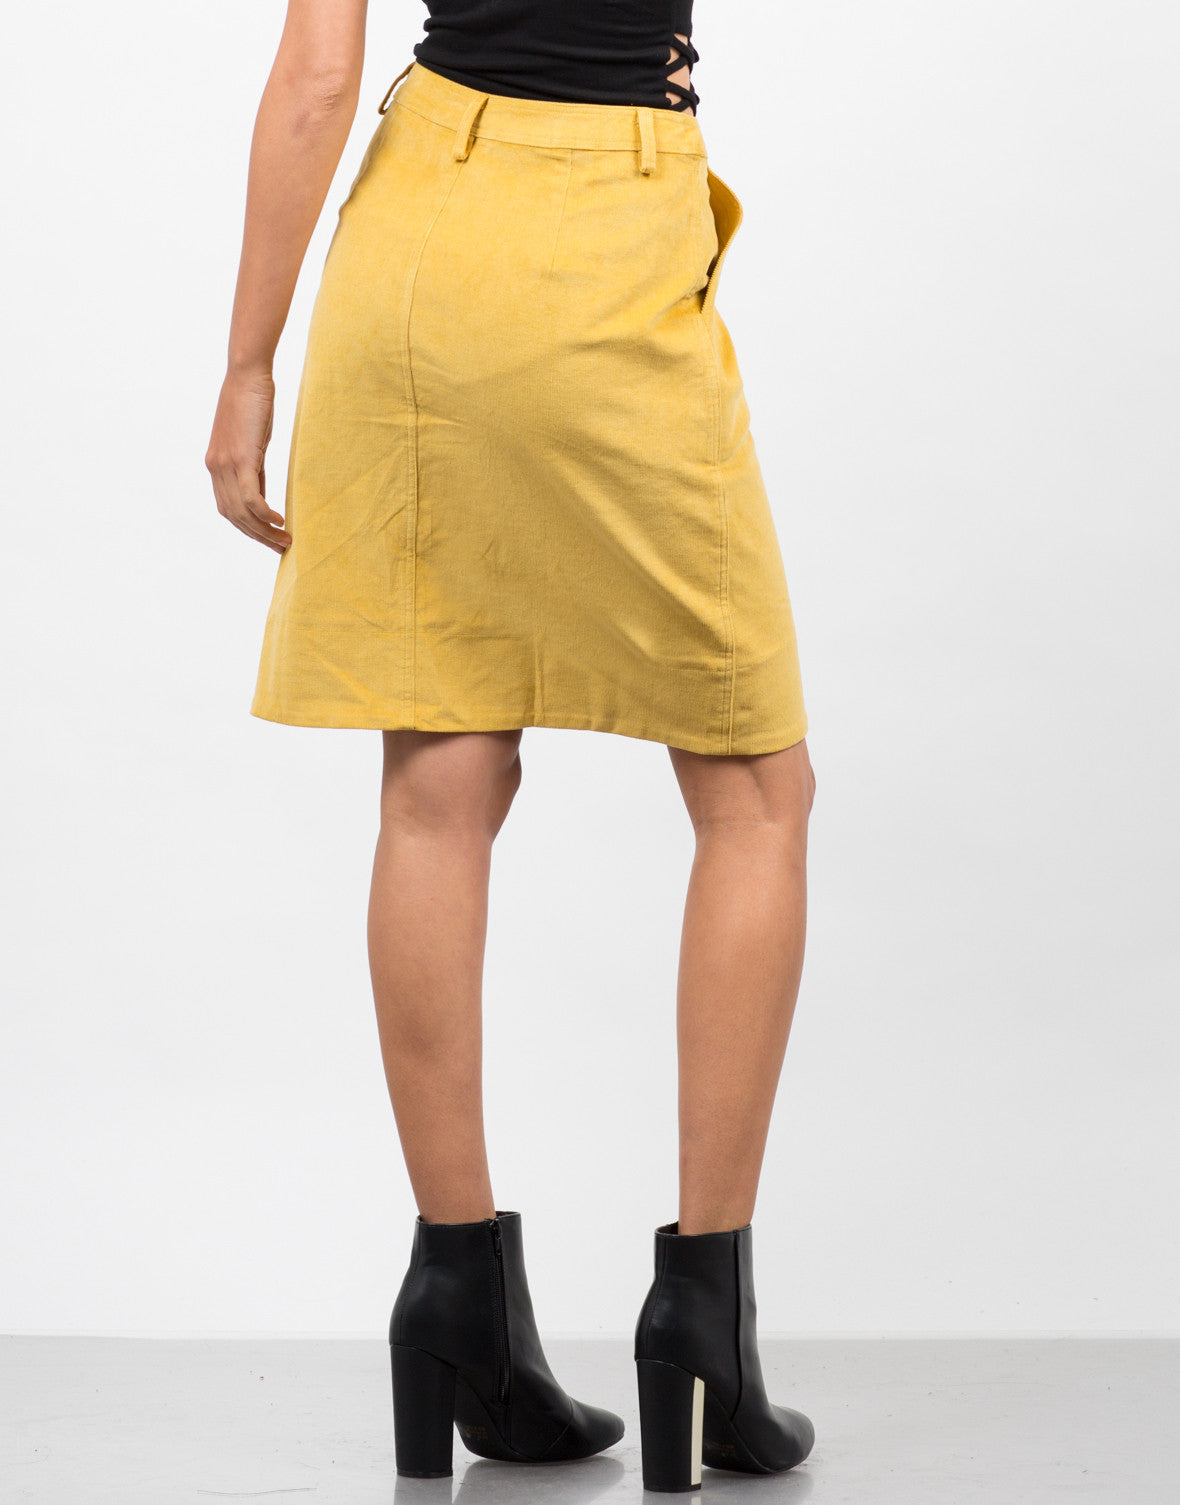 Back View of High Waisted Corduroy Skirt